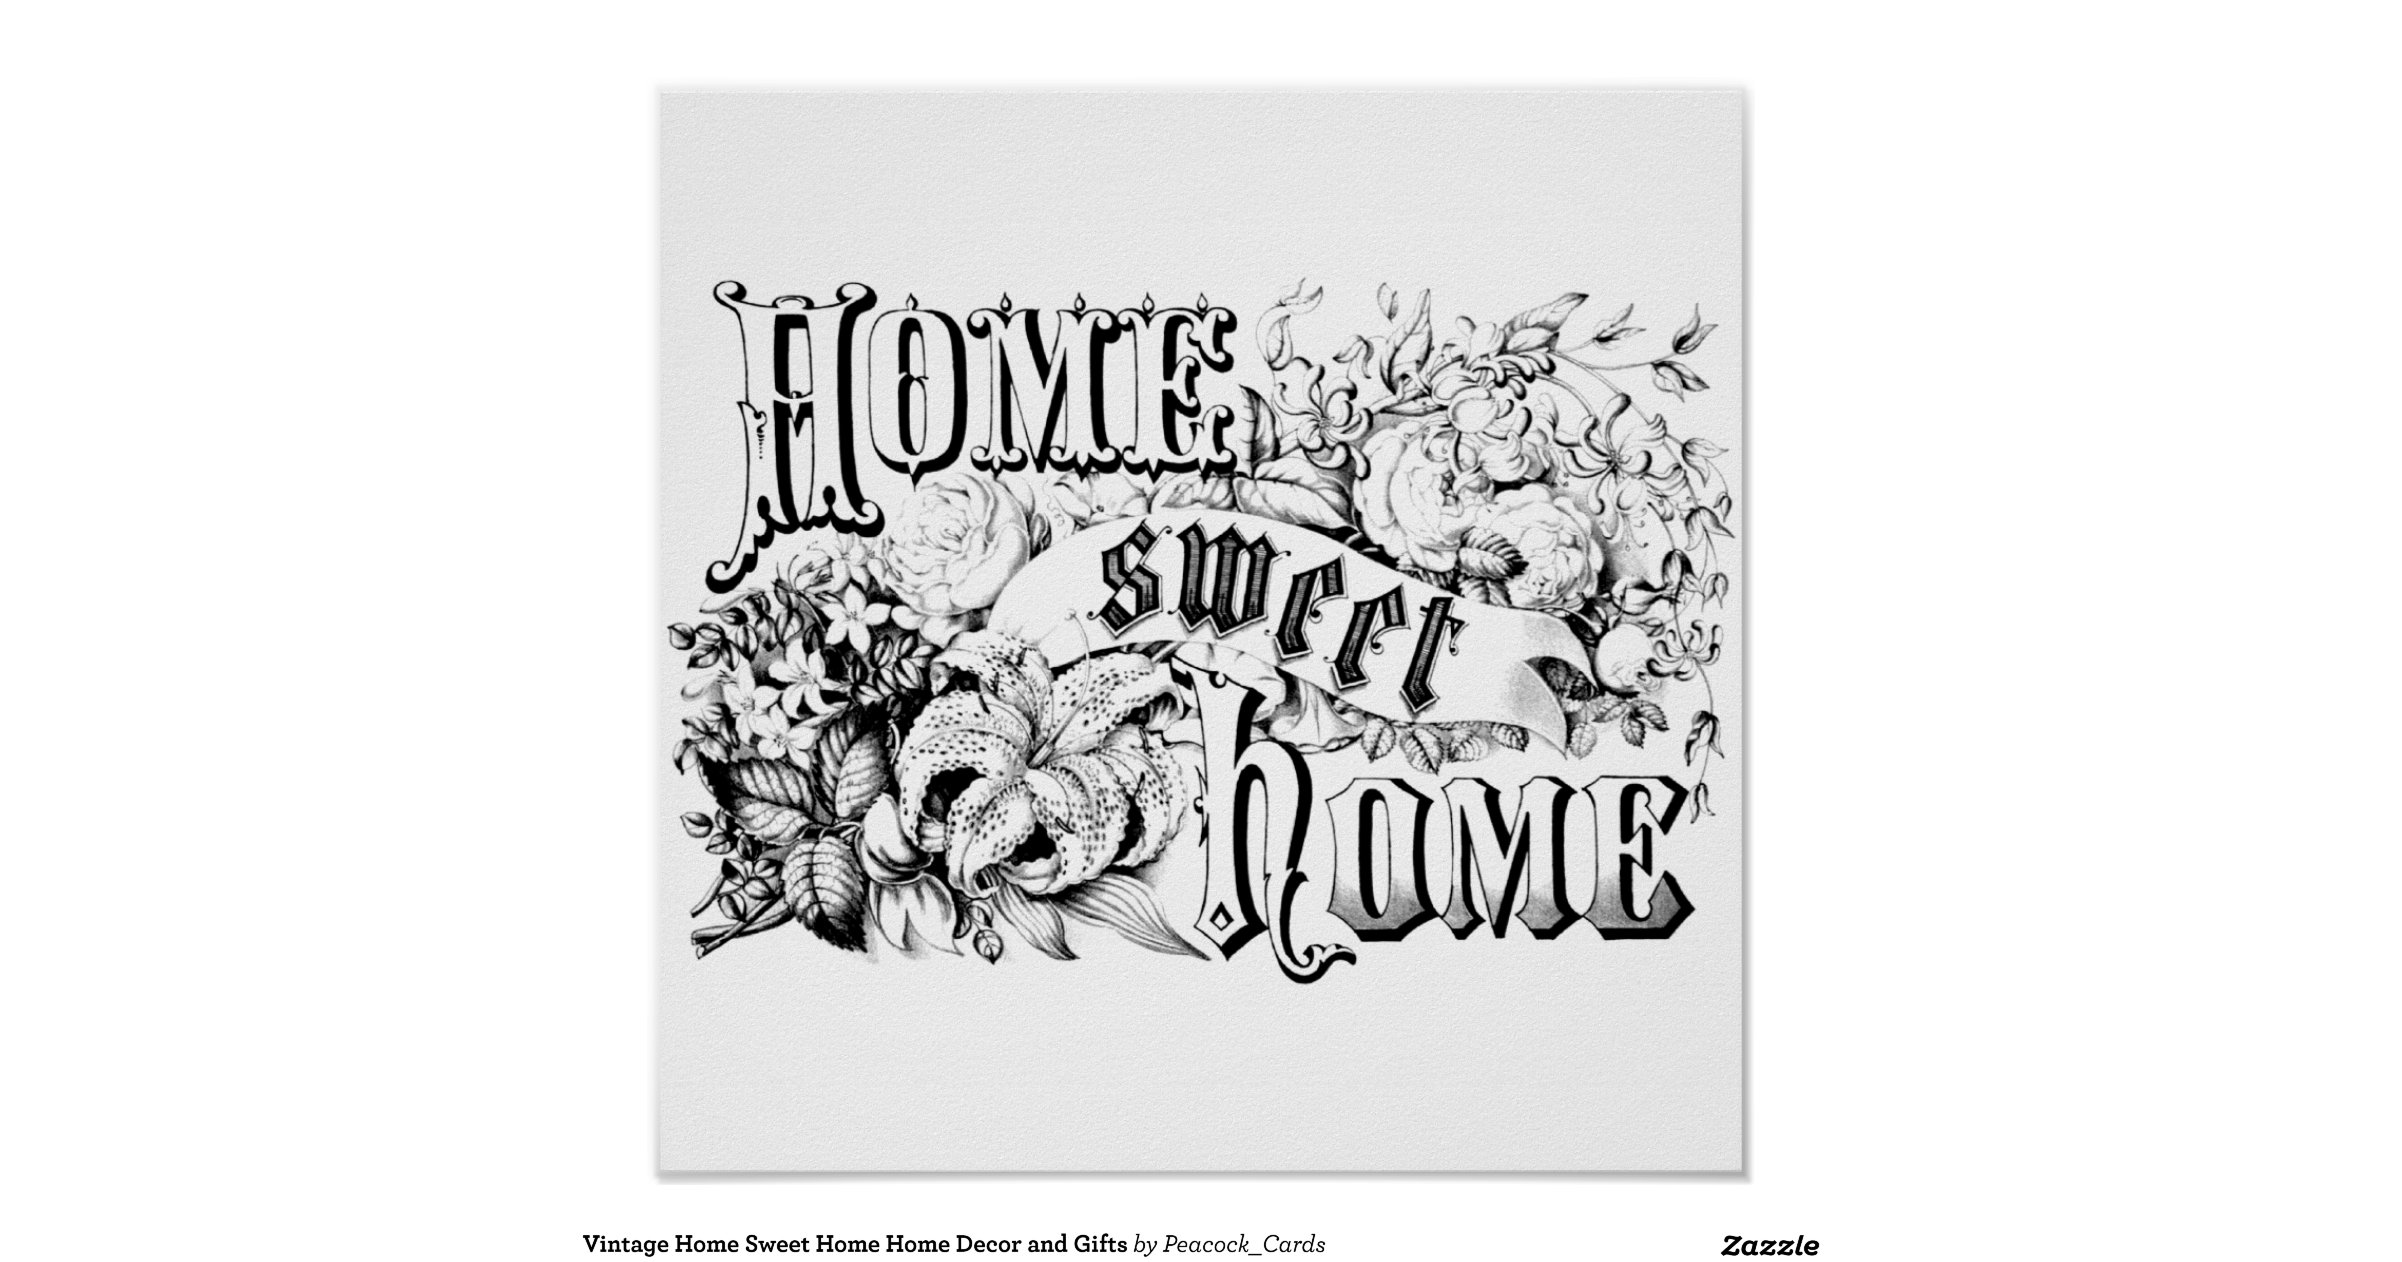 Vintage Home Sweet Home Home Decor And Gifts Poster Zazzle